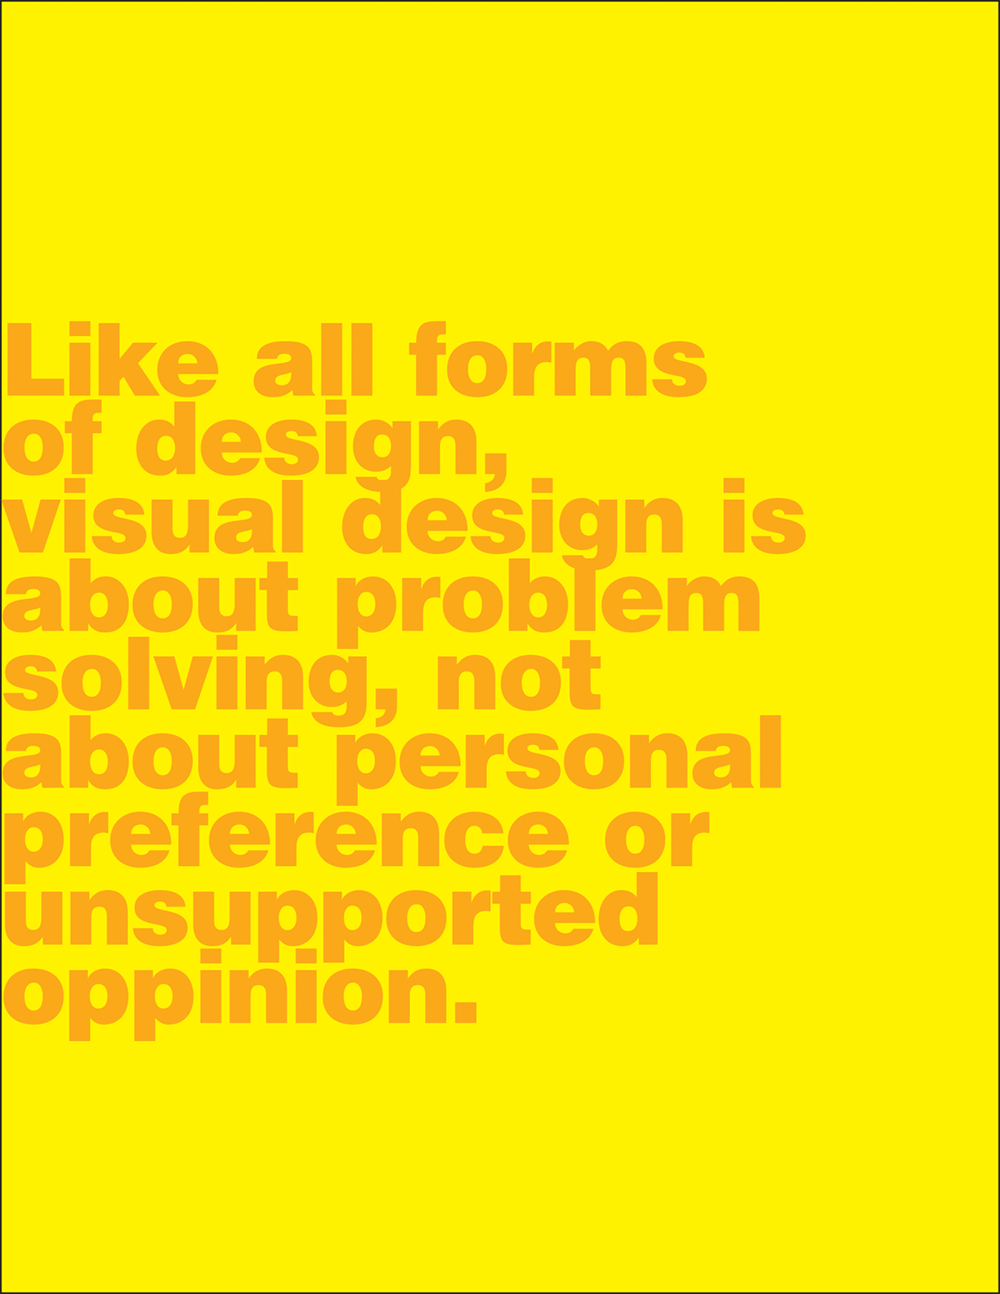 Design-quote.png